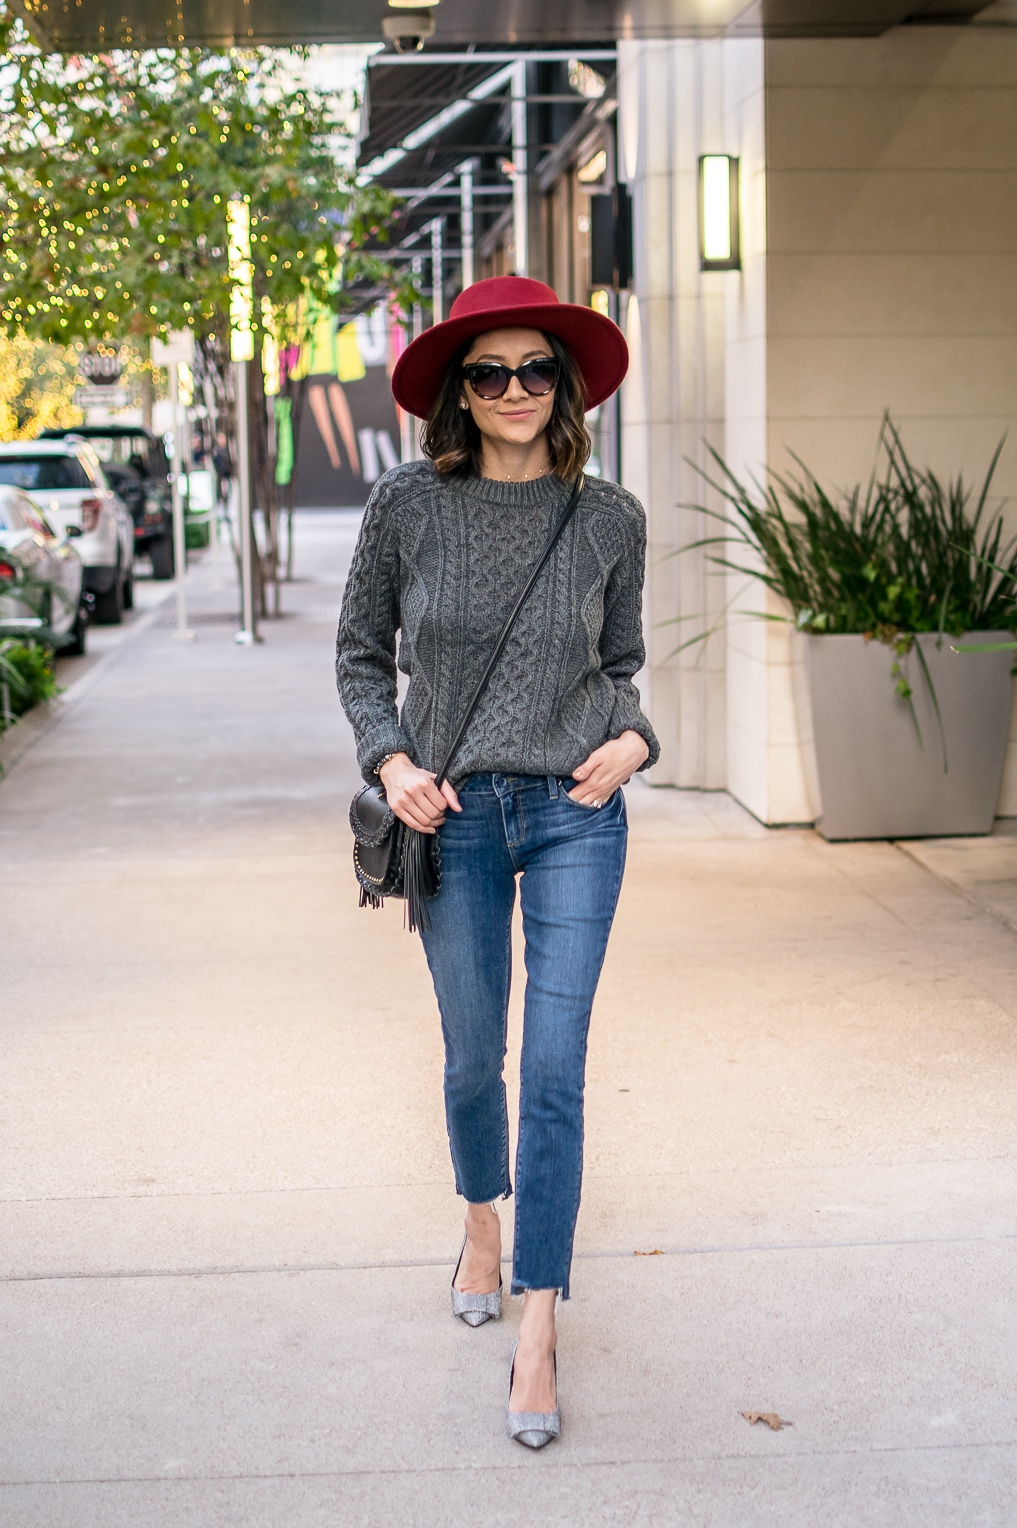 Lilly Beltran of Daily Craving blog wearing a cozy Thanksgiving look with raw hem jeans and glitter bow heels